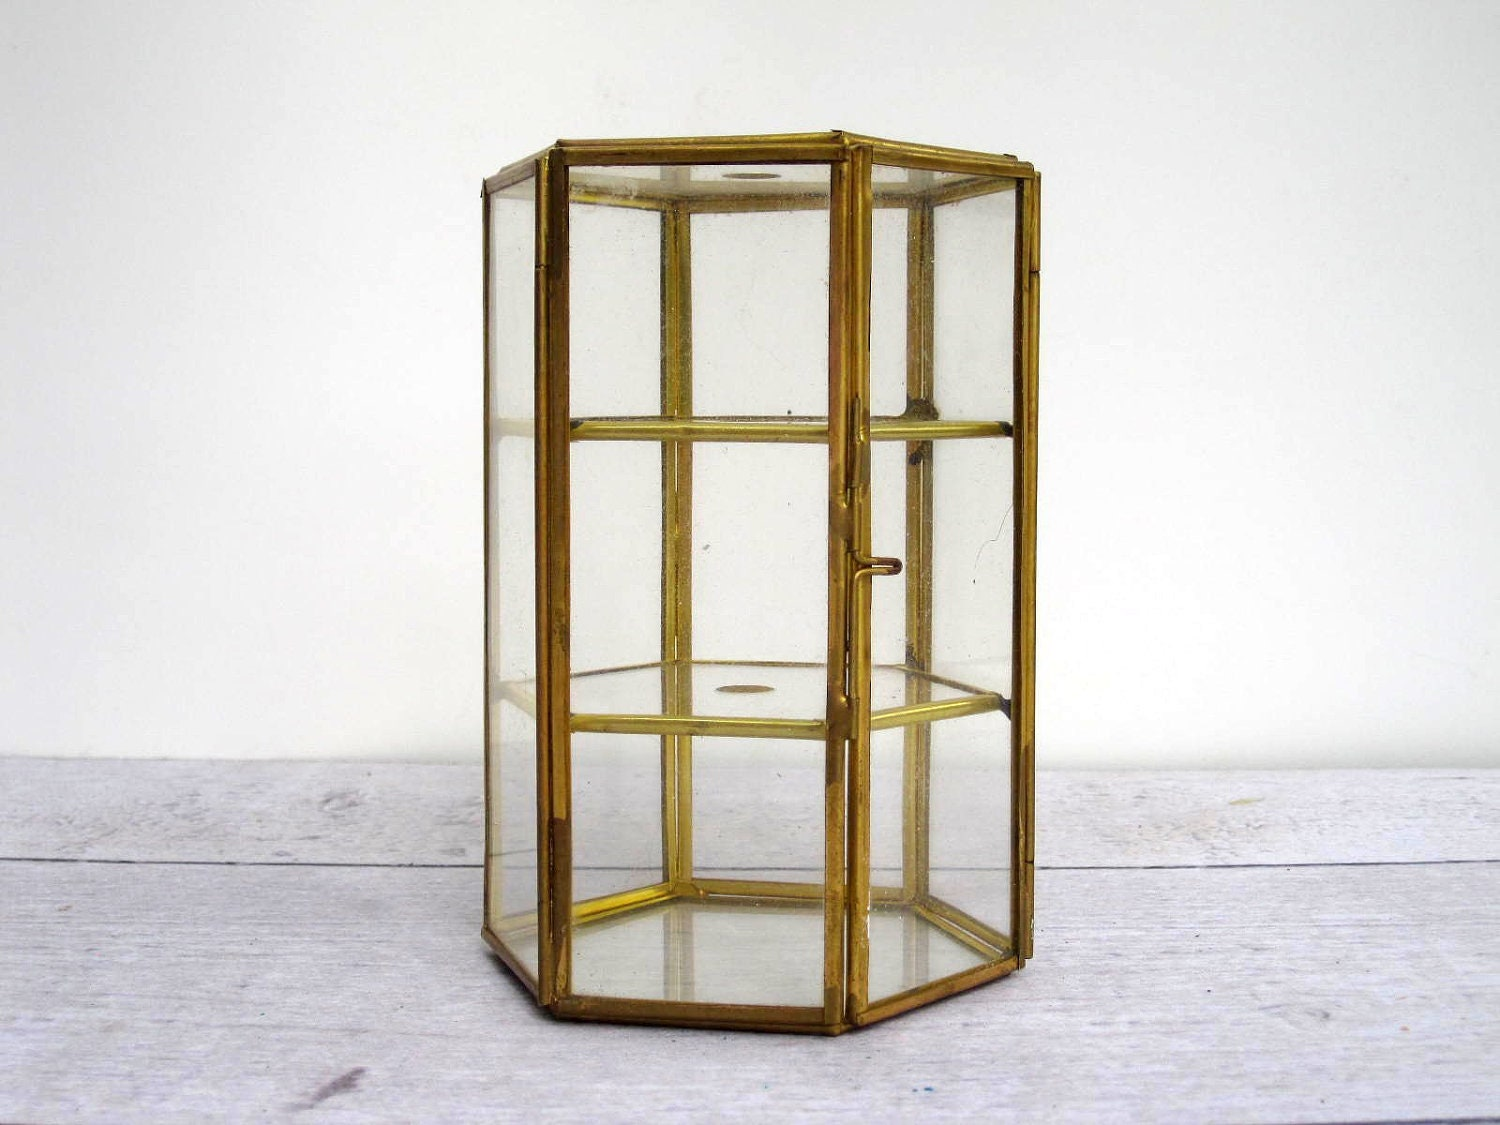 #66471B Display Case Glass And Brass Box Or Small Curio Cabinet with 1500x1125 px of Highly Rated Small Glass Display Cabinet For Collectibles 11251500 picture/photo @ avoidforclosure.info